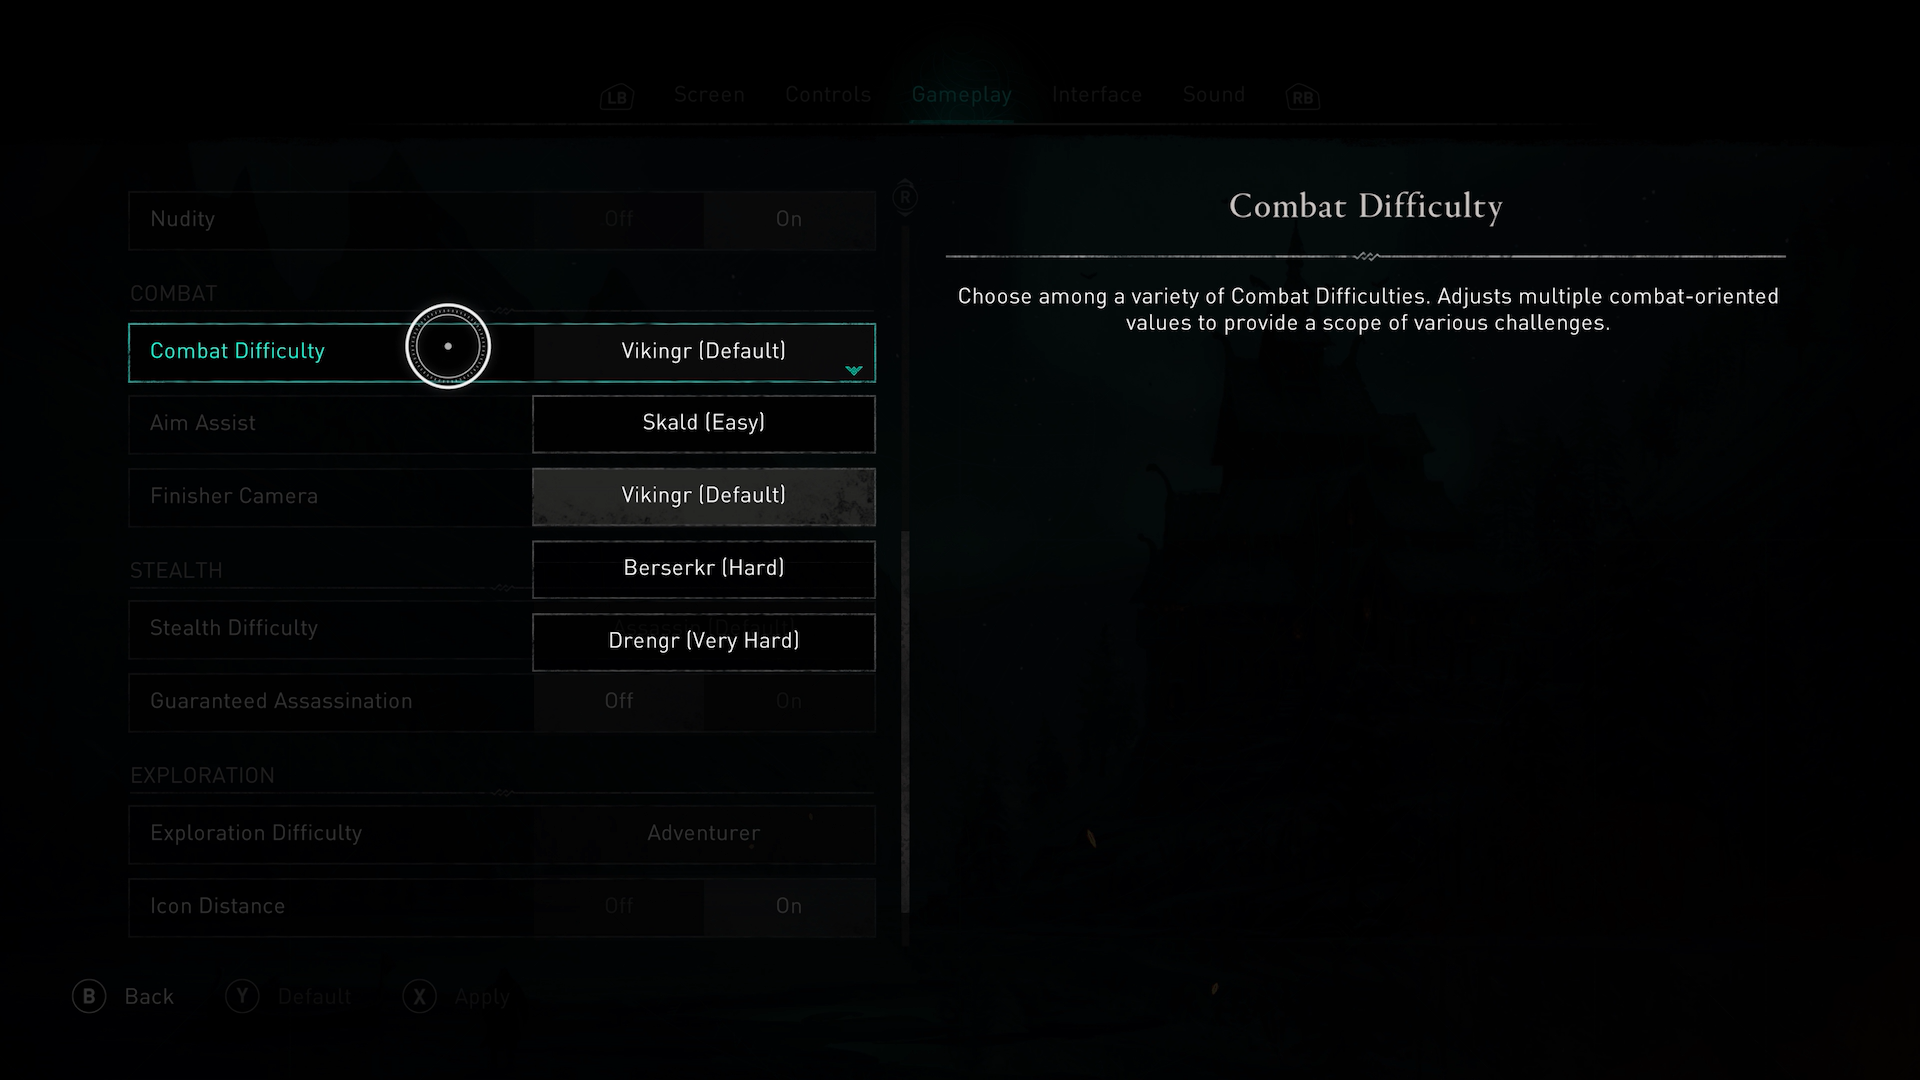 A screenshot showing the Combat Difficulty options in Assassins Creed Valhalla.